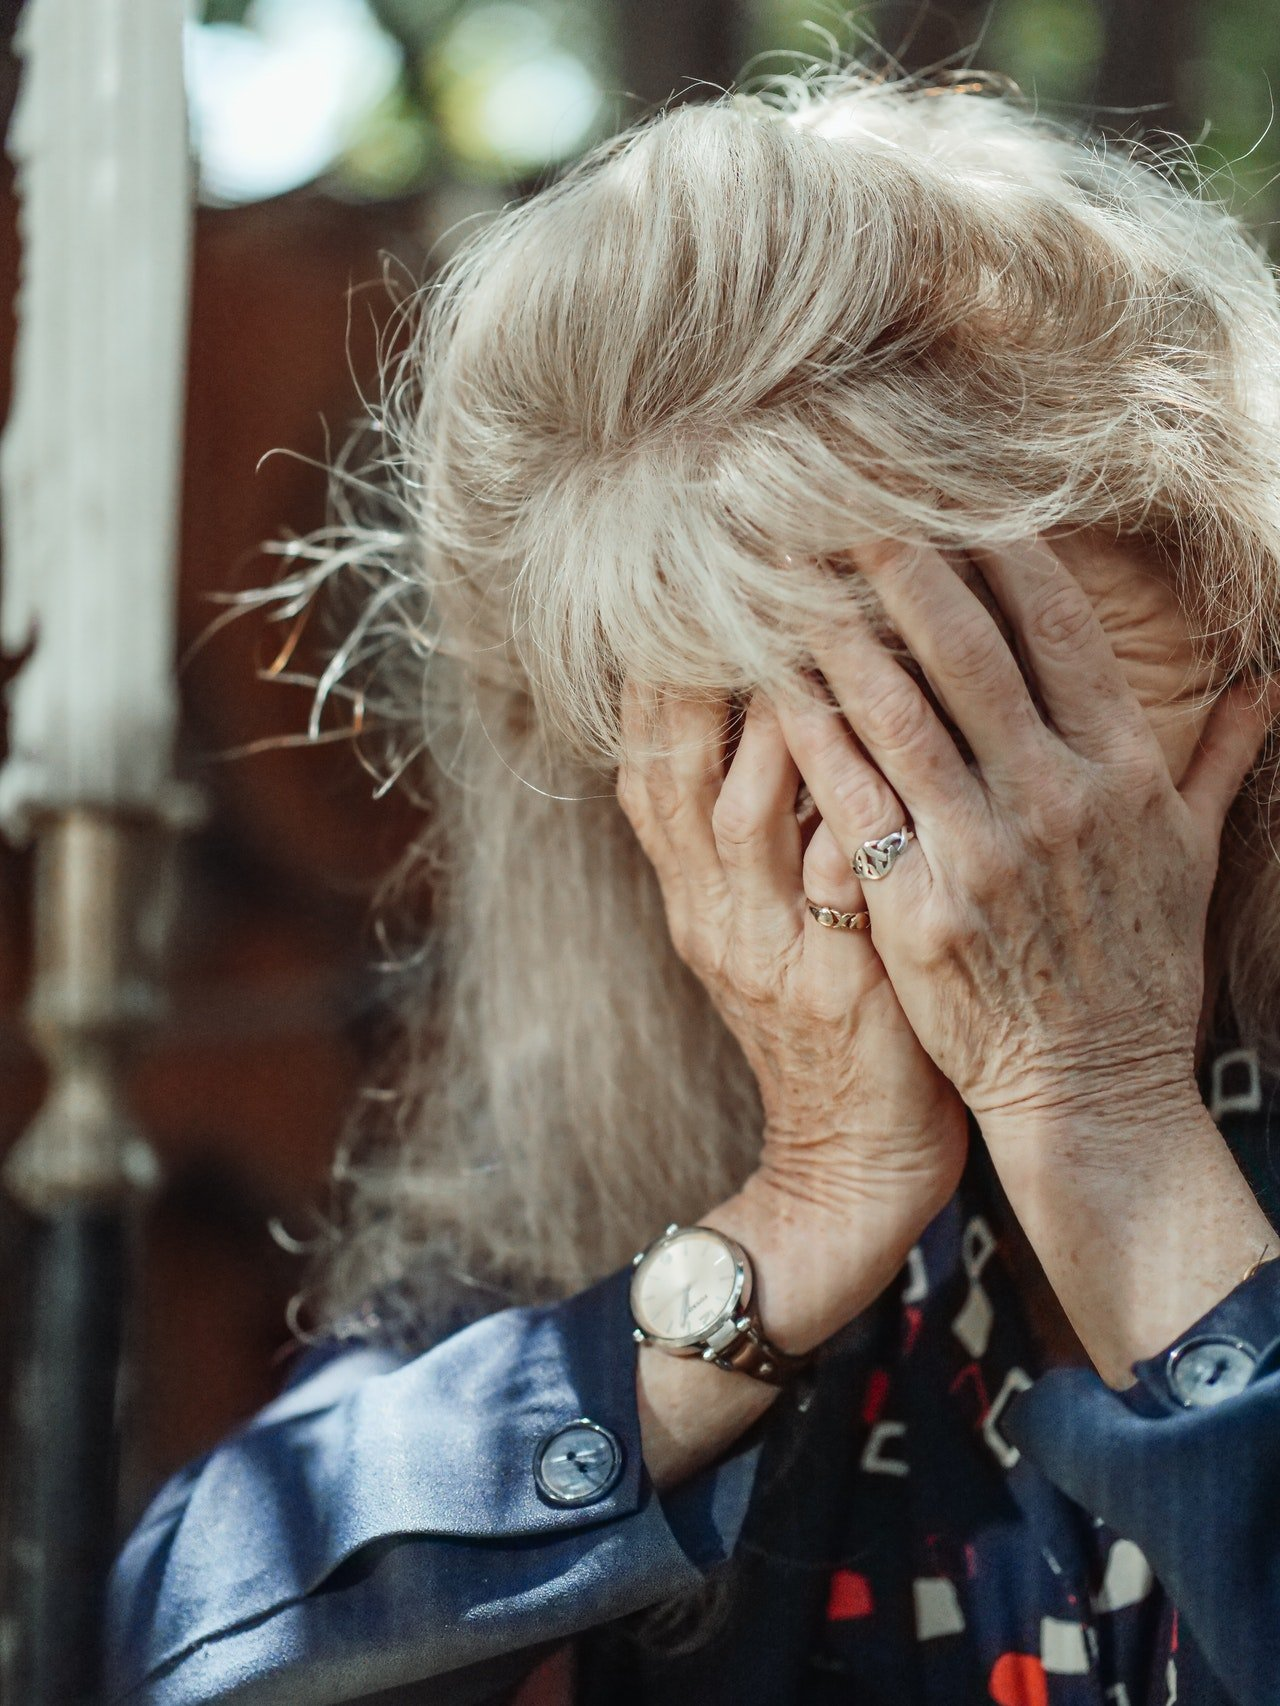 Adelaine cried out of frustration, and a new neighbor saw her.   Source: Pexels